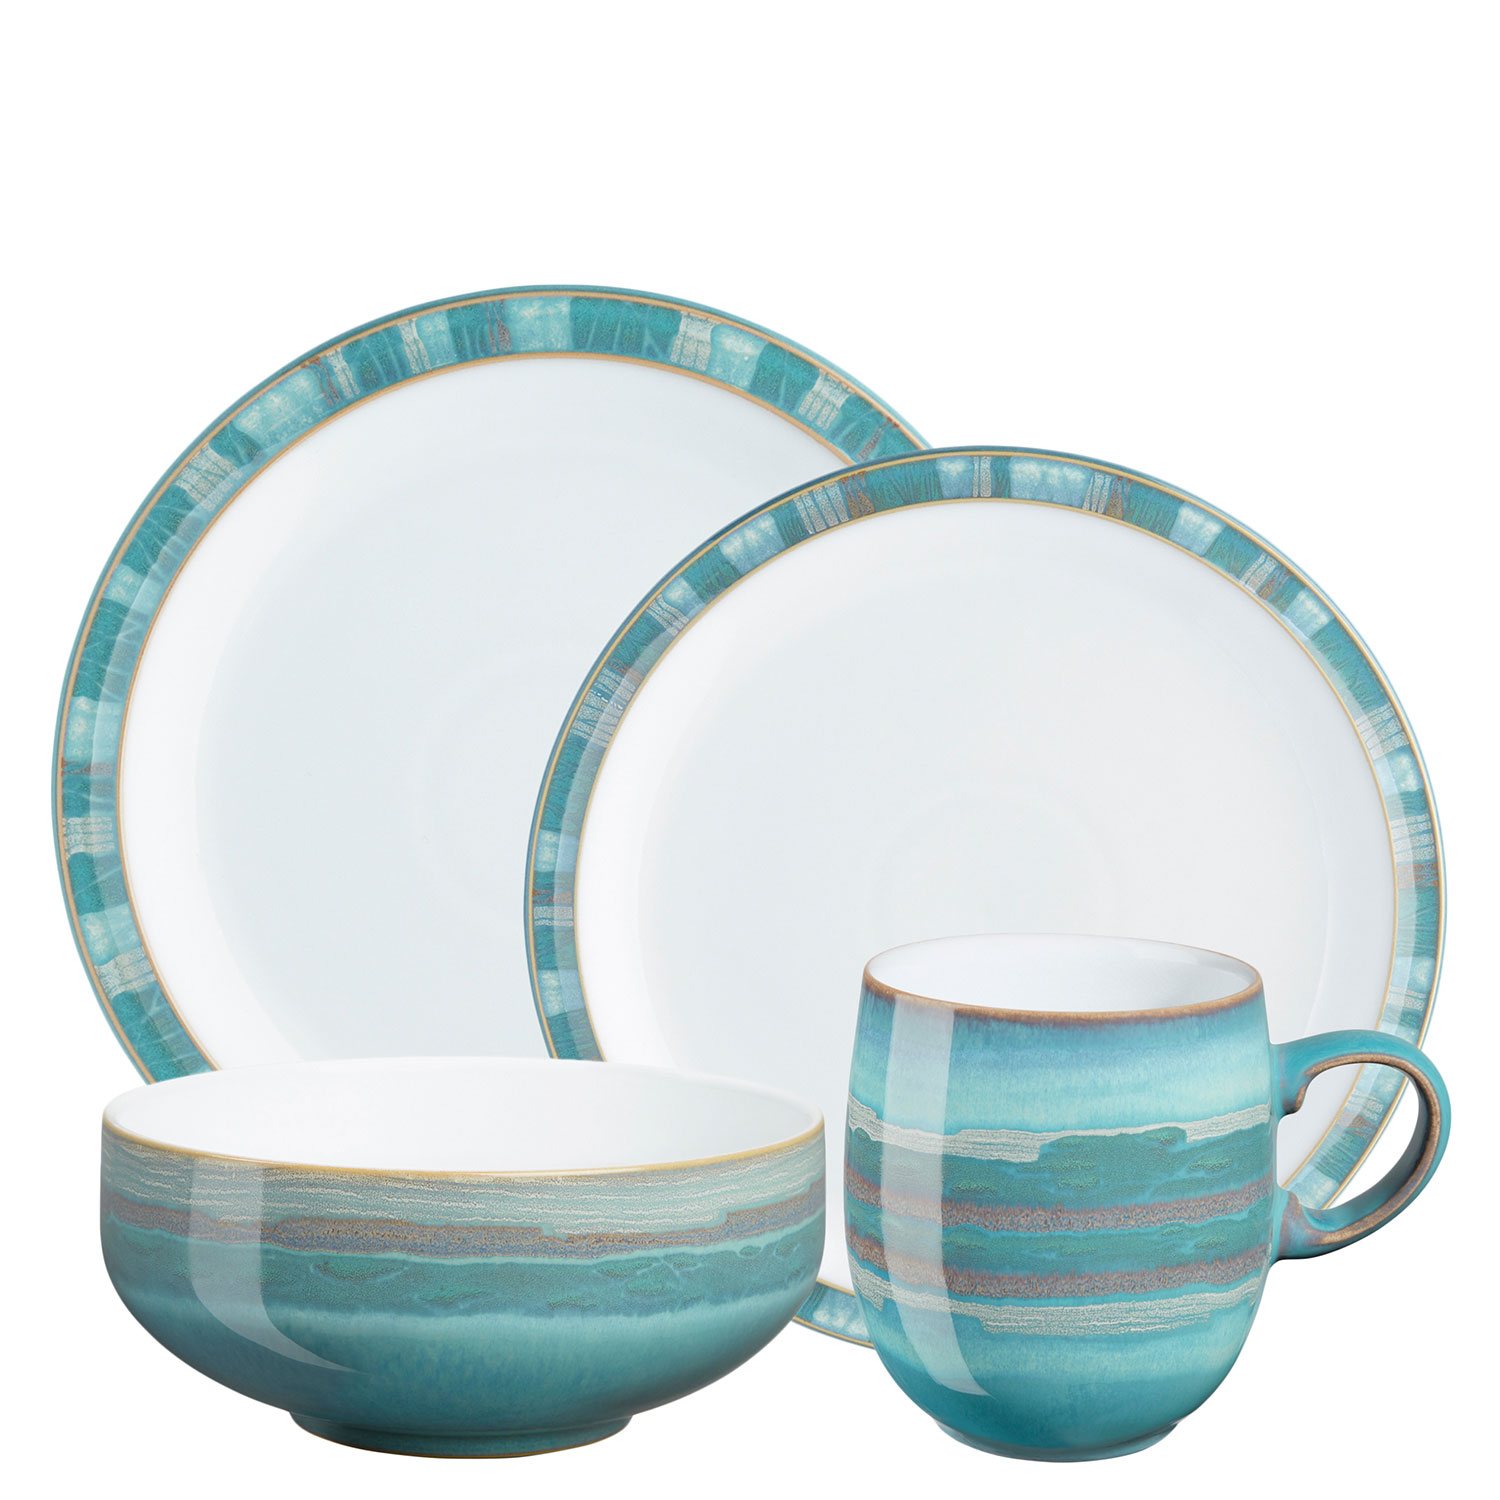 4 Piece Place Setting - Large Mug